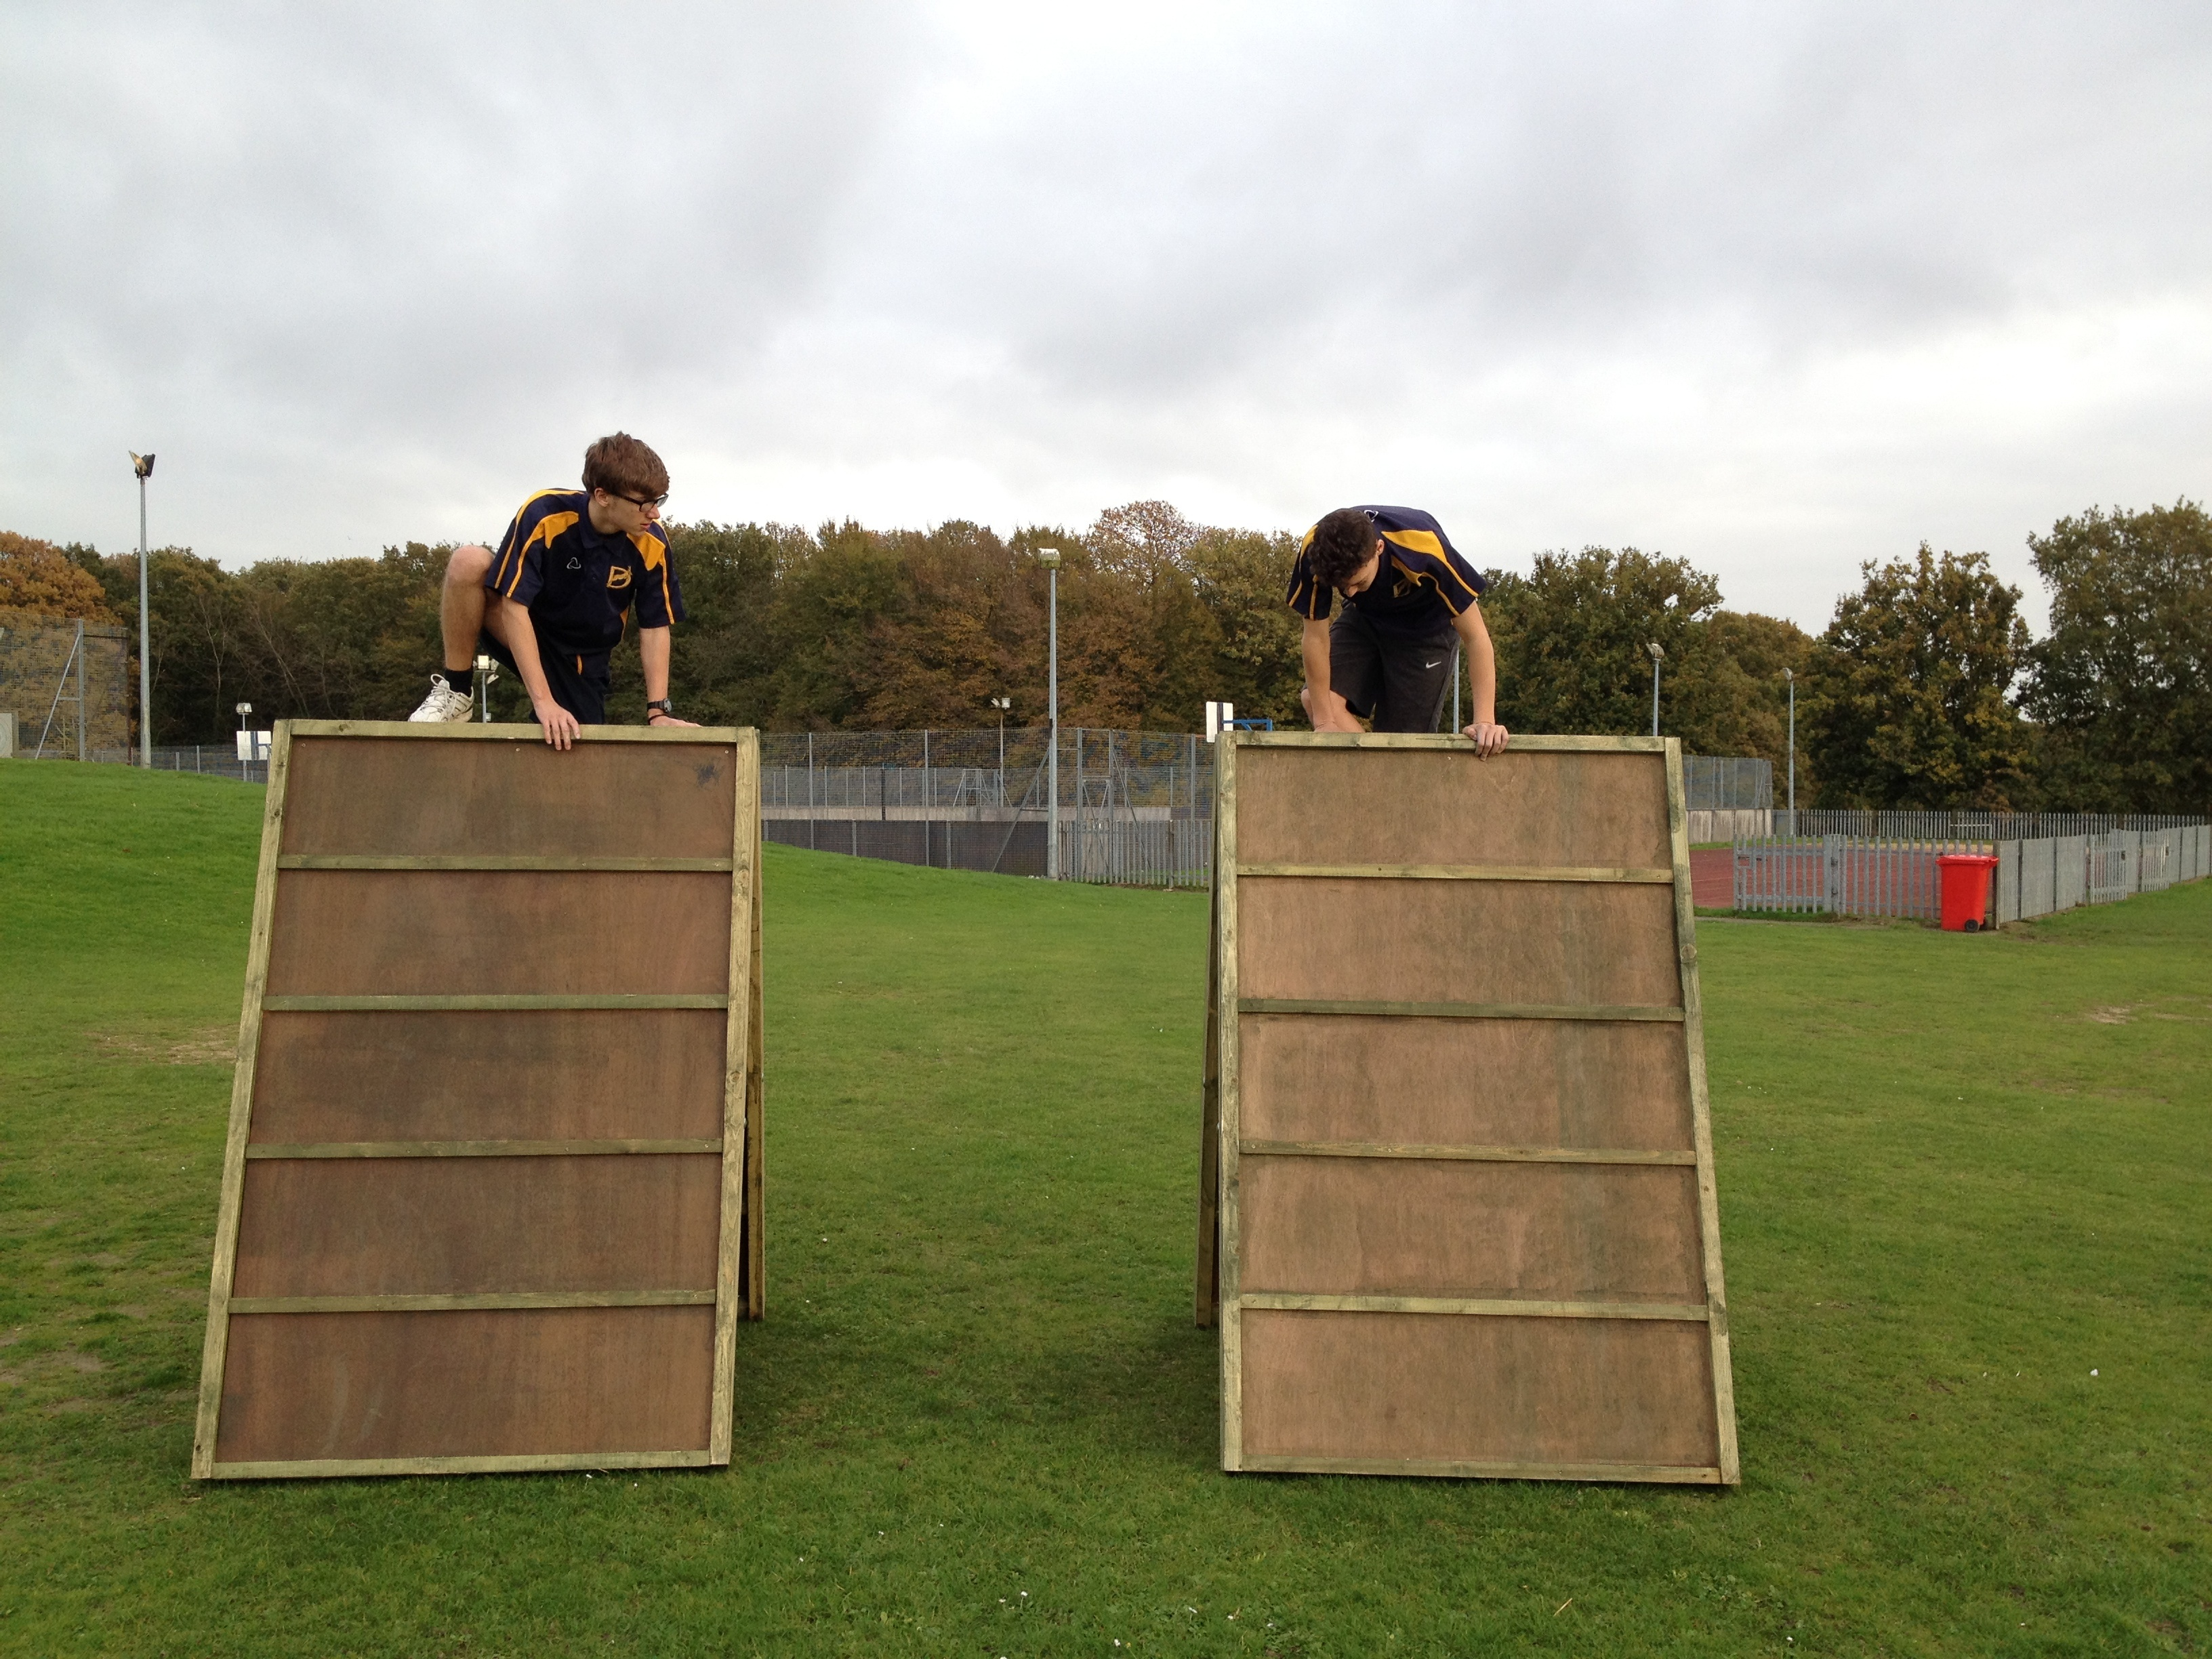 Children On Obstacle Course Equipment